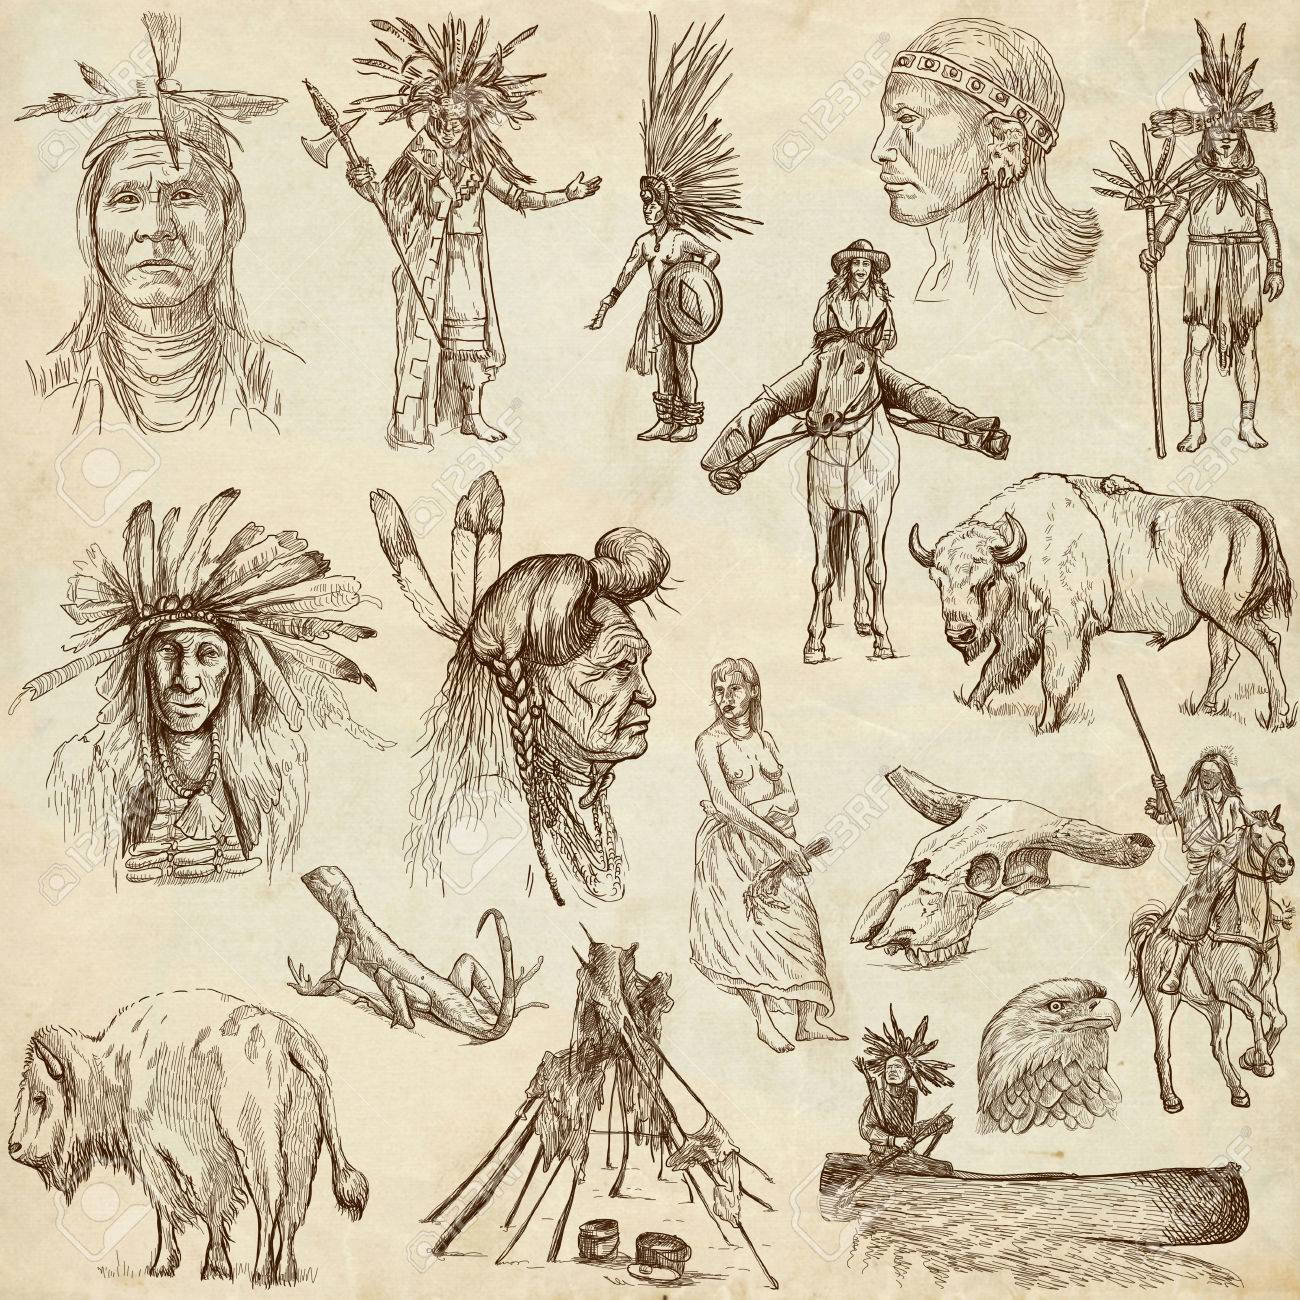 1300x1300 Indians And Wild West